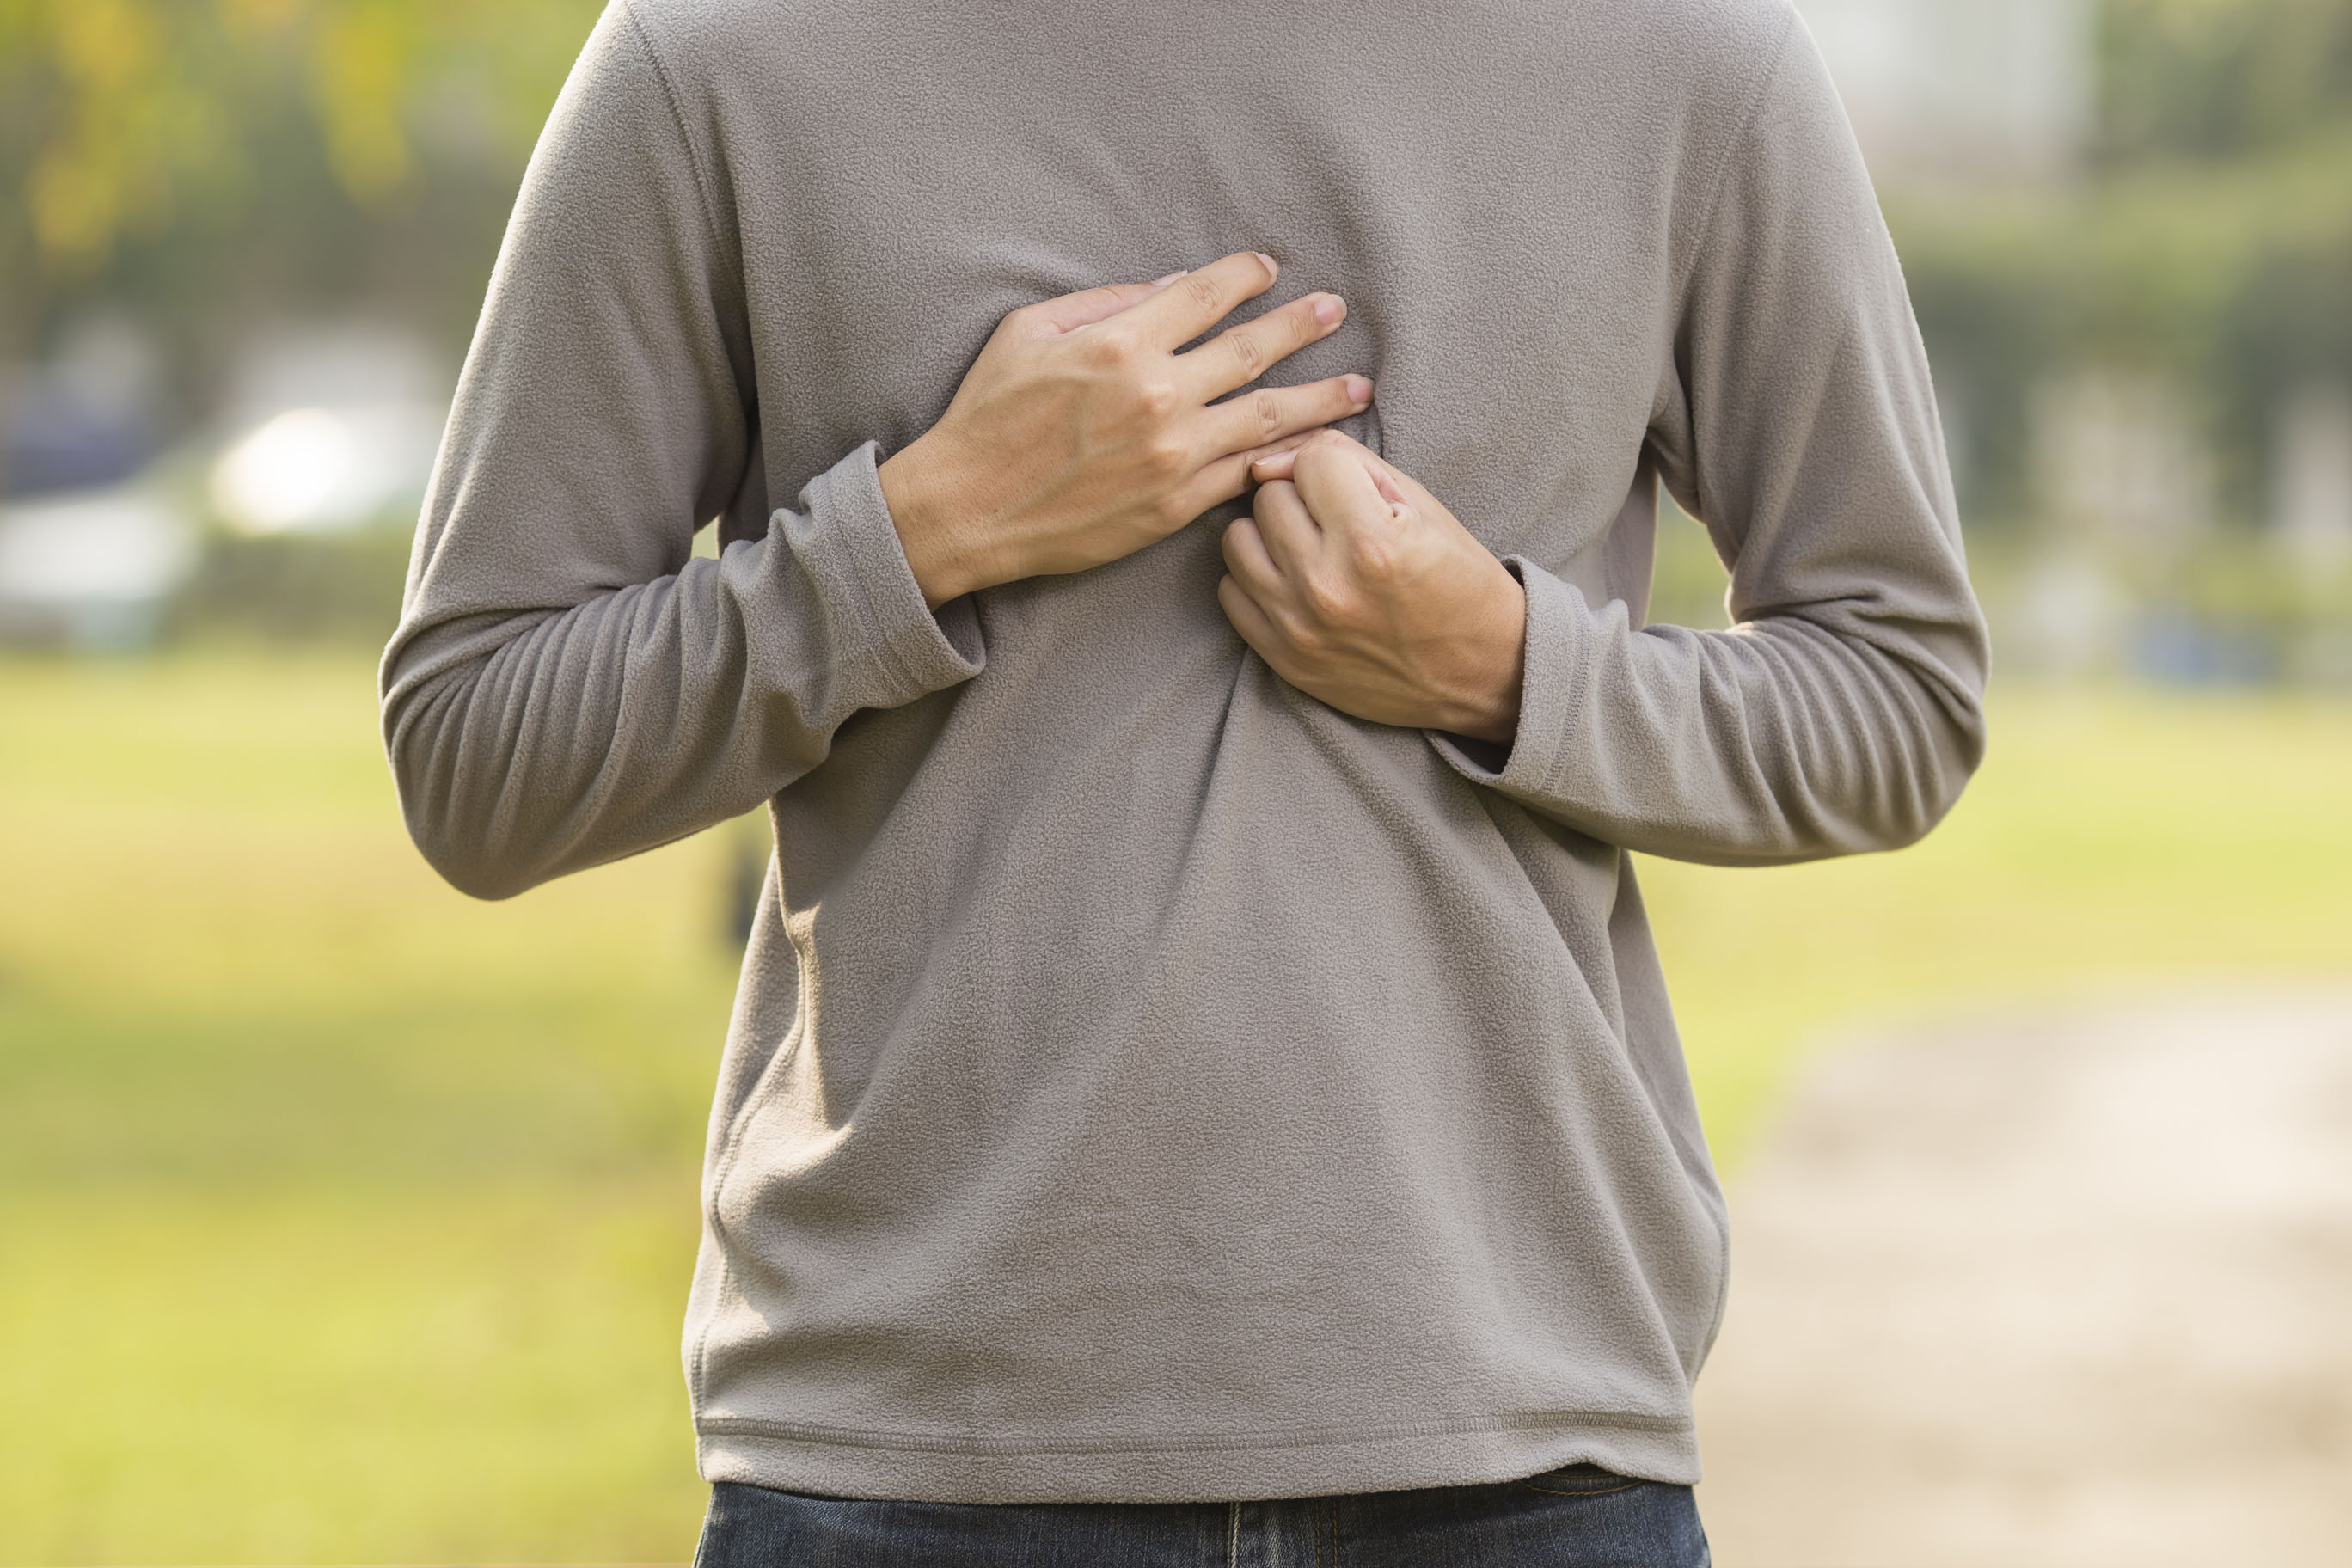 COPD and GERD | COPD Foundation Blog